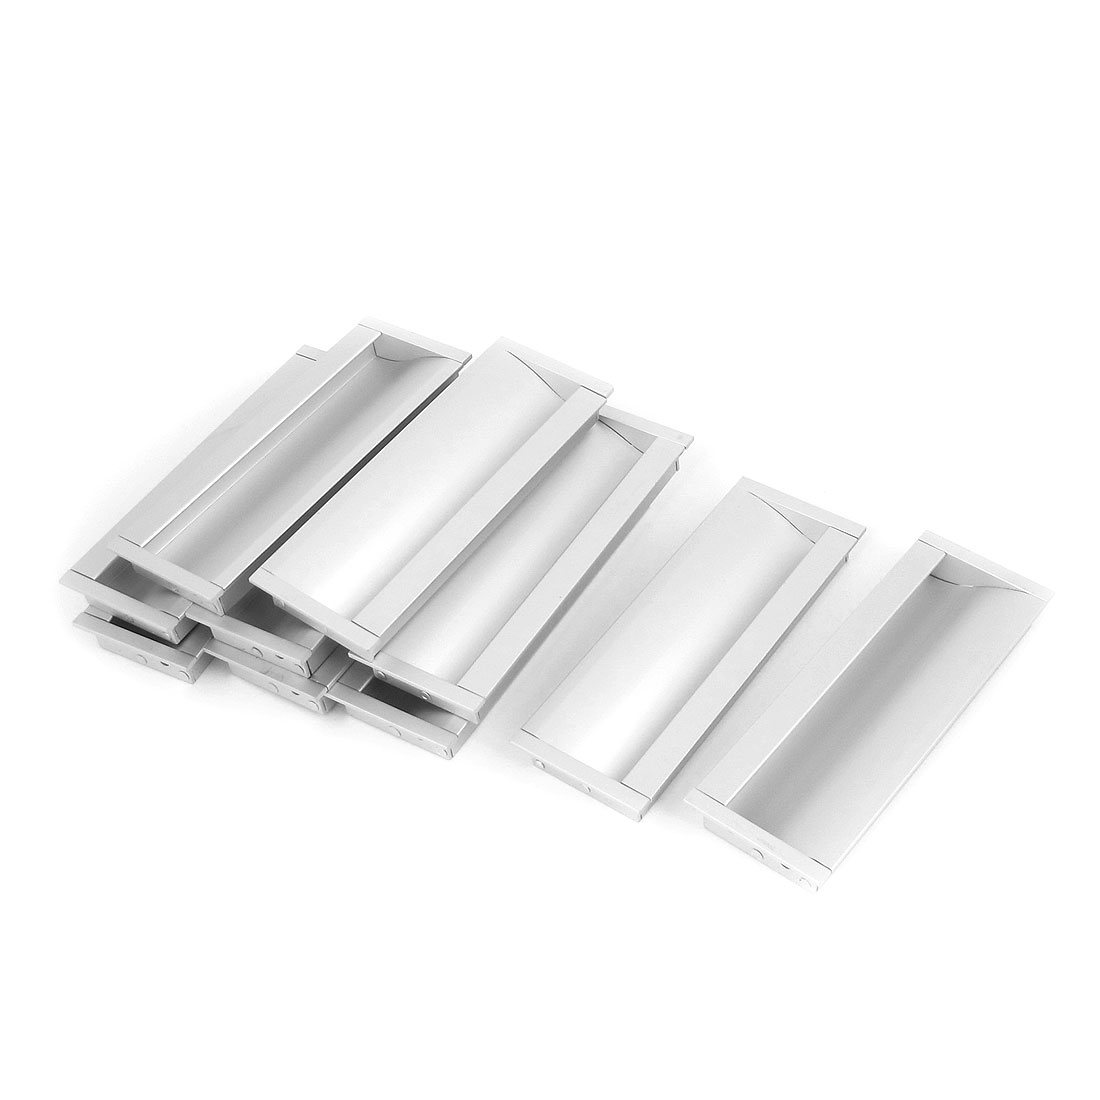 10pcs Silver Tone Metal Cupboard Recessed Flush Pull Door Finger Insert Handle 130mmx47mm